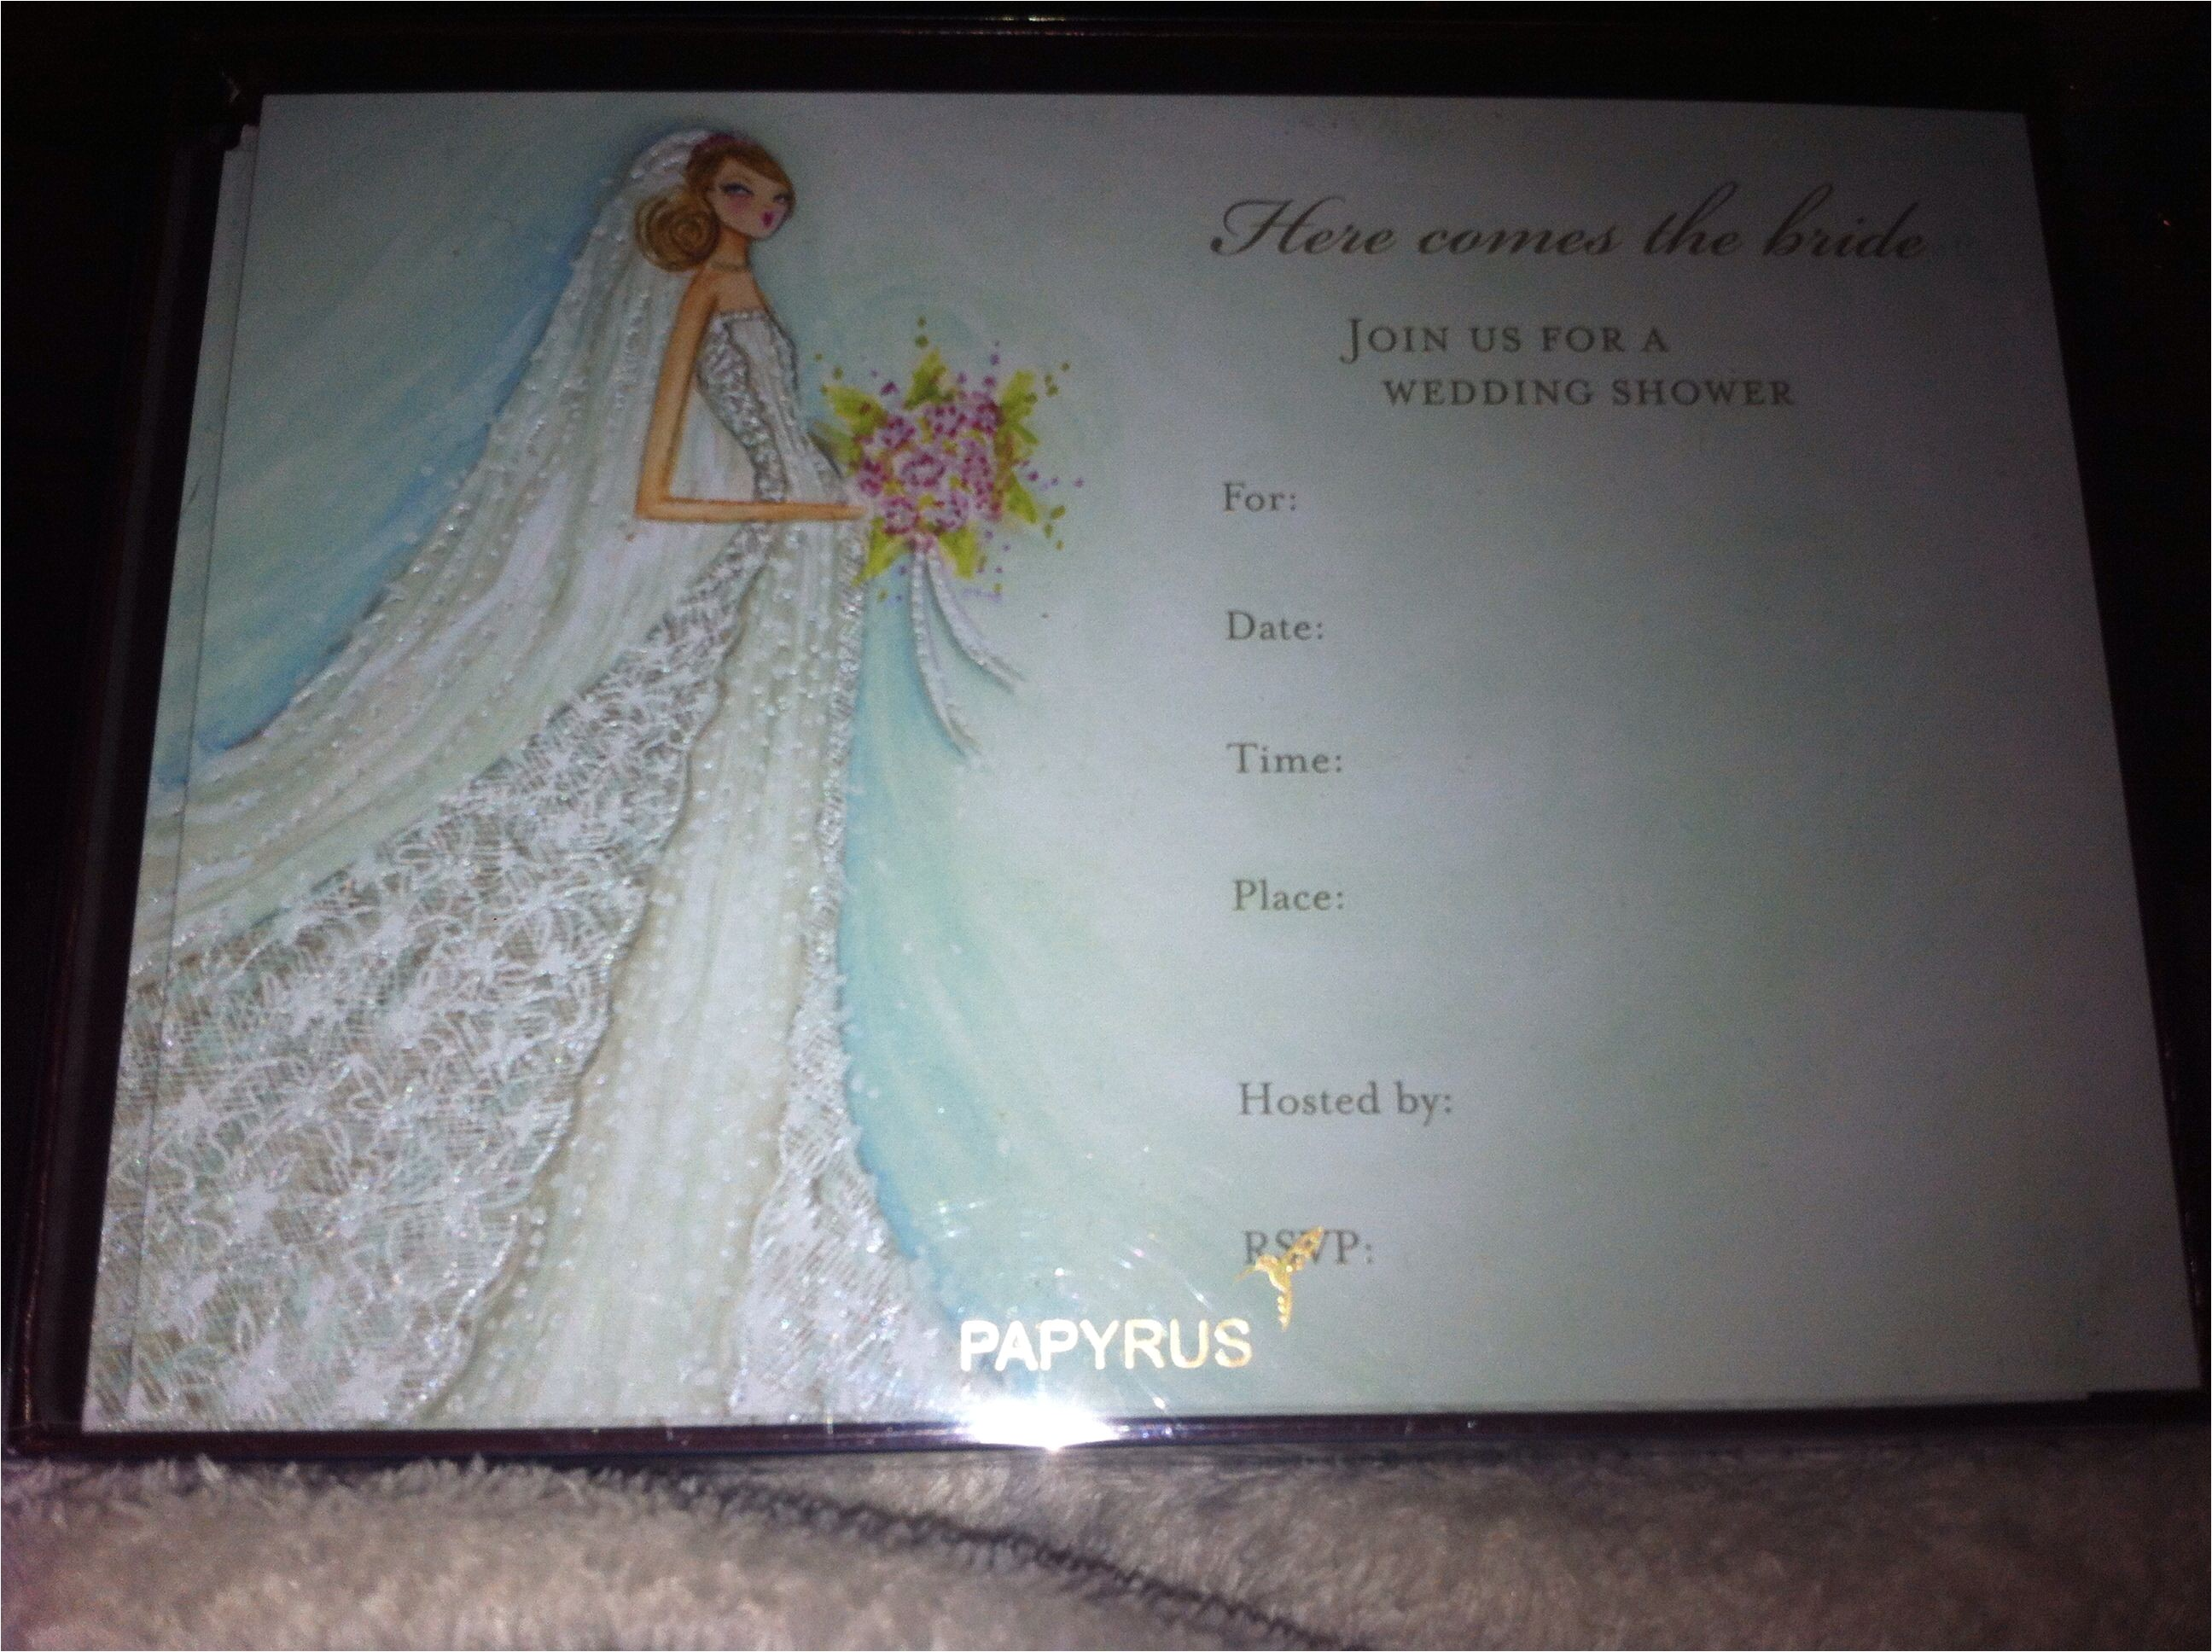 Papyrus Bridal Shower Invitations Bridal Shower Invitations Bridal Shower Invitations Papyrus